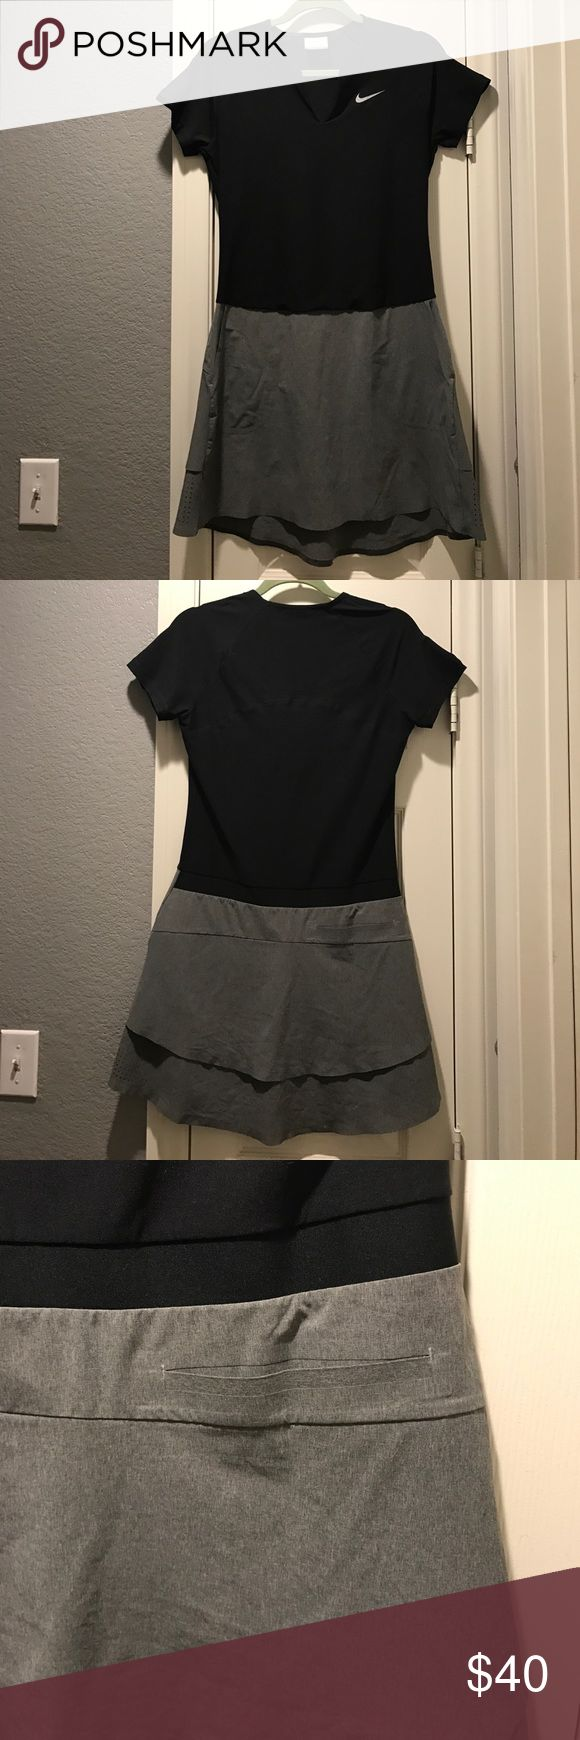 Nike Golf Dress Size Medium Nike Golf Dress Size Medium, dry fit material. Super cute ventilation holes! Only worn once to an event (: feel free to ask any questions or make me an offer! Nike Dresses